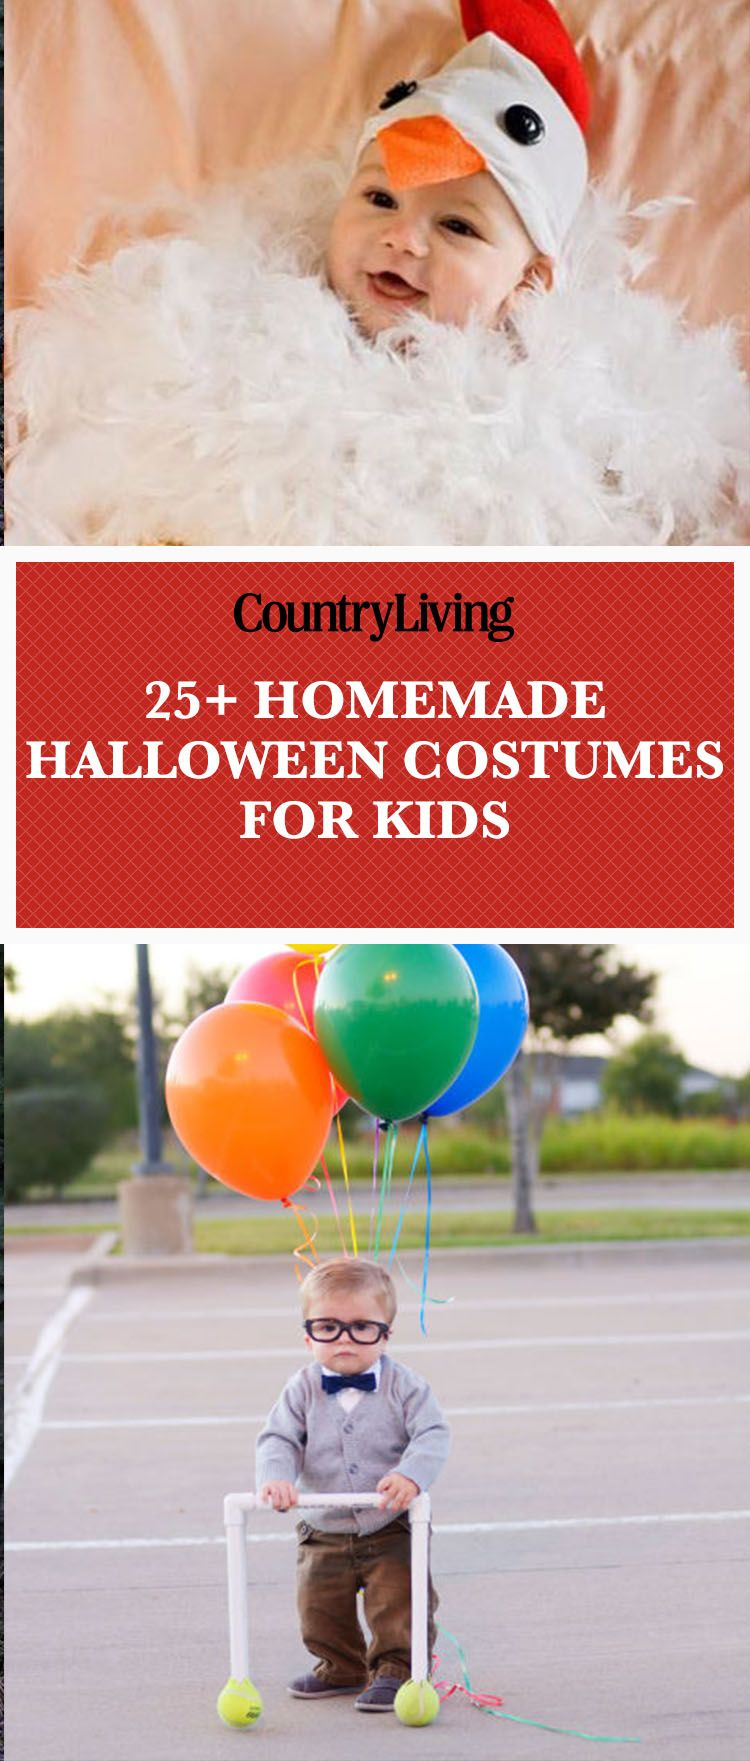 62 homemade halloween costumes for kids - easy diy ideas kids